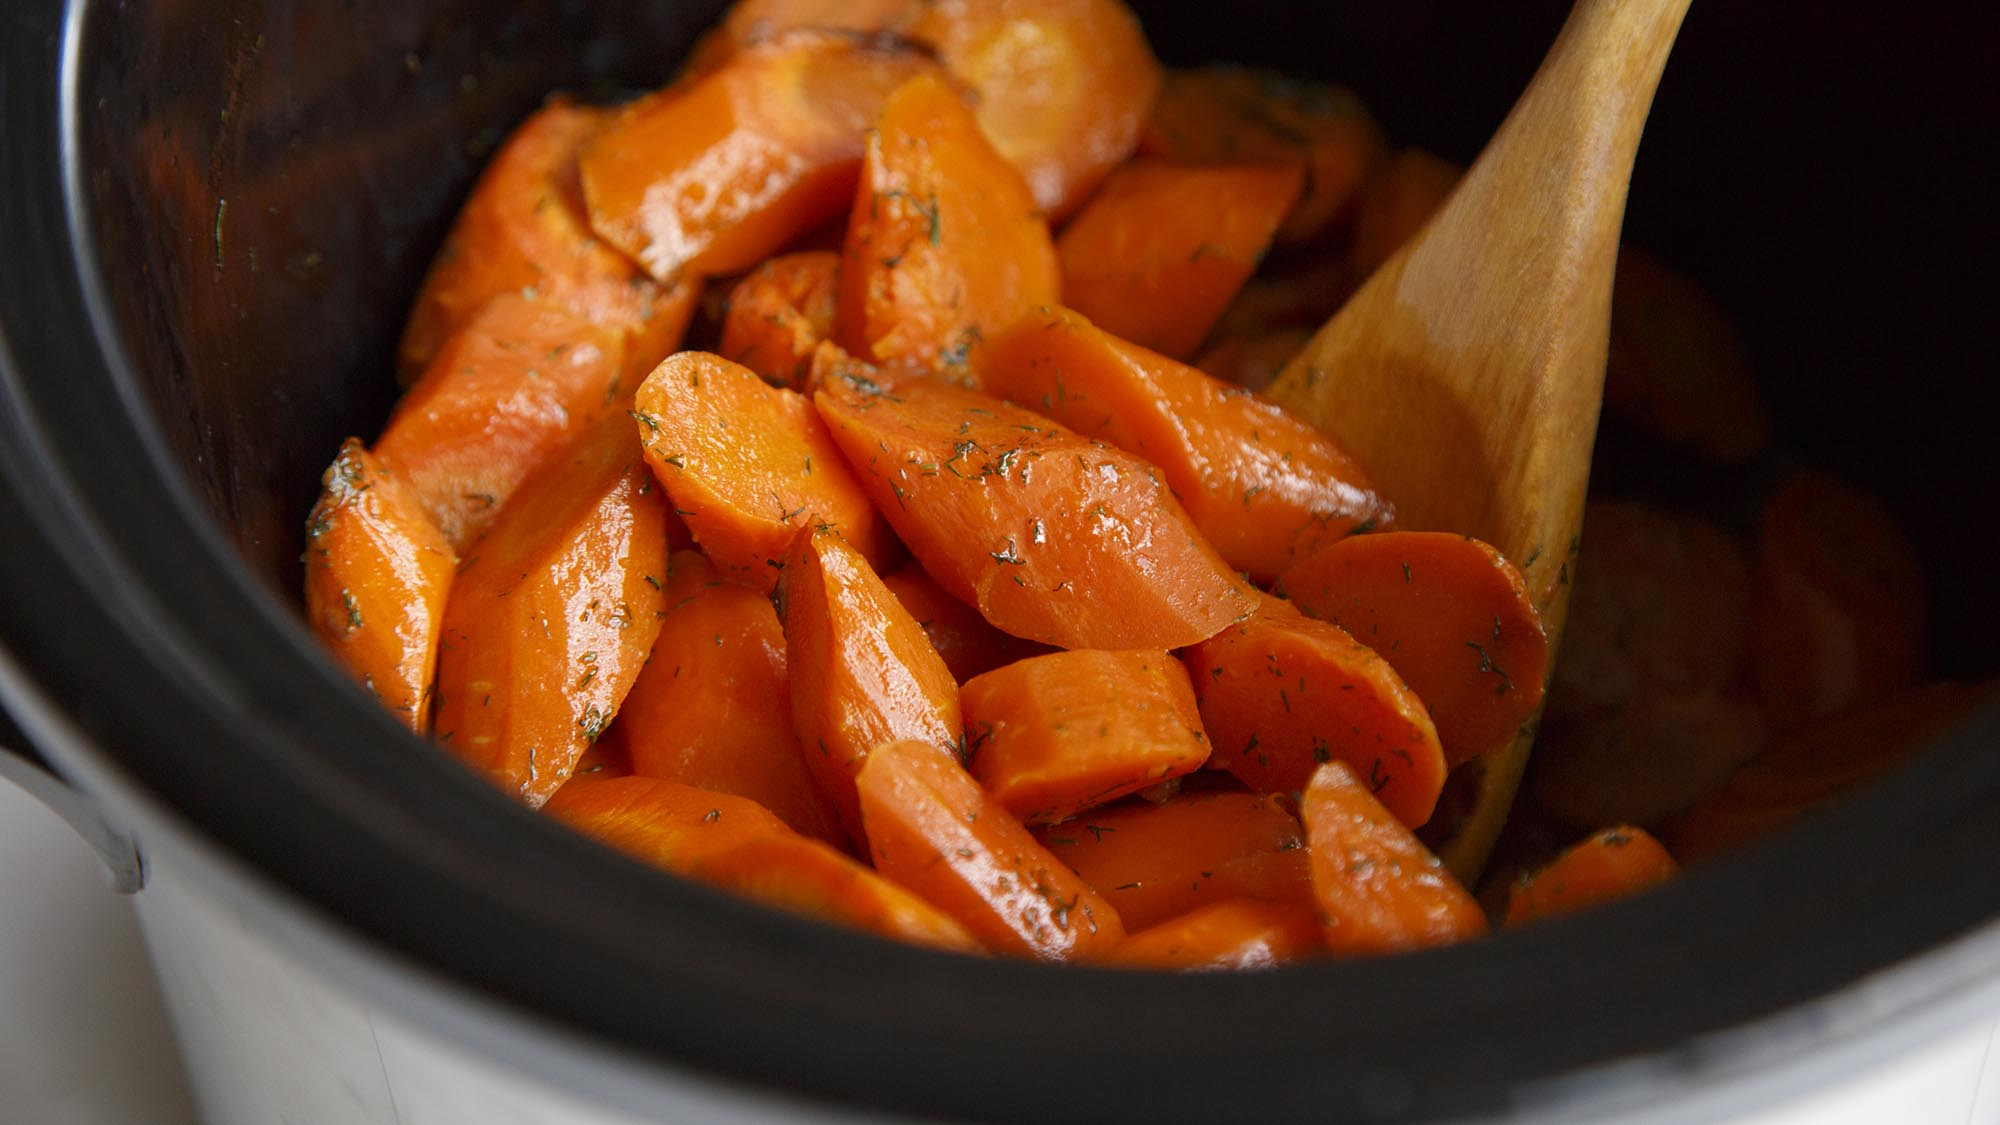 Lemon_Dill_Slow_Cooker_Carrots_2000x1125.jpg